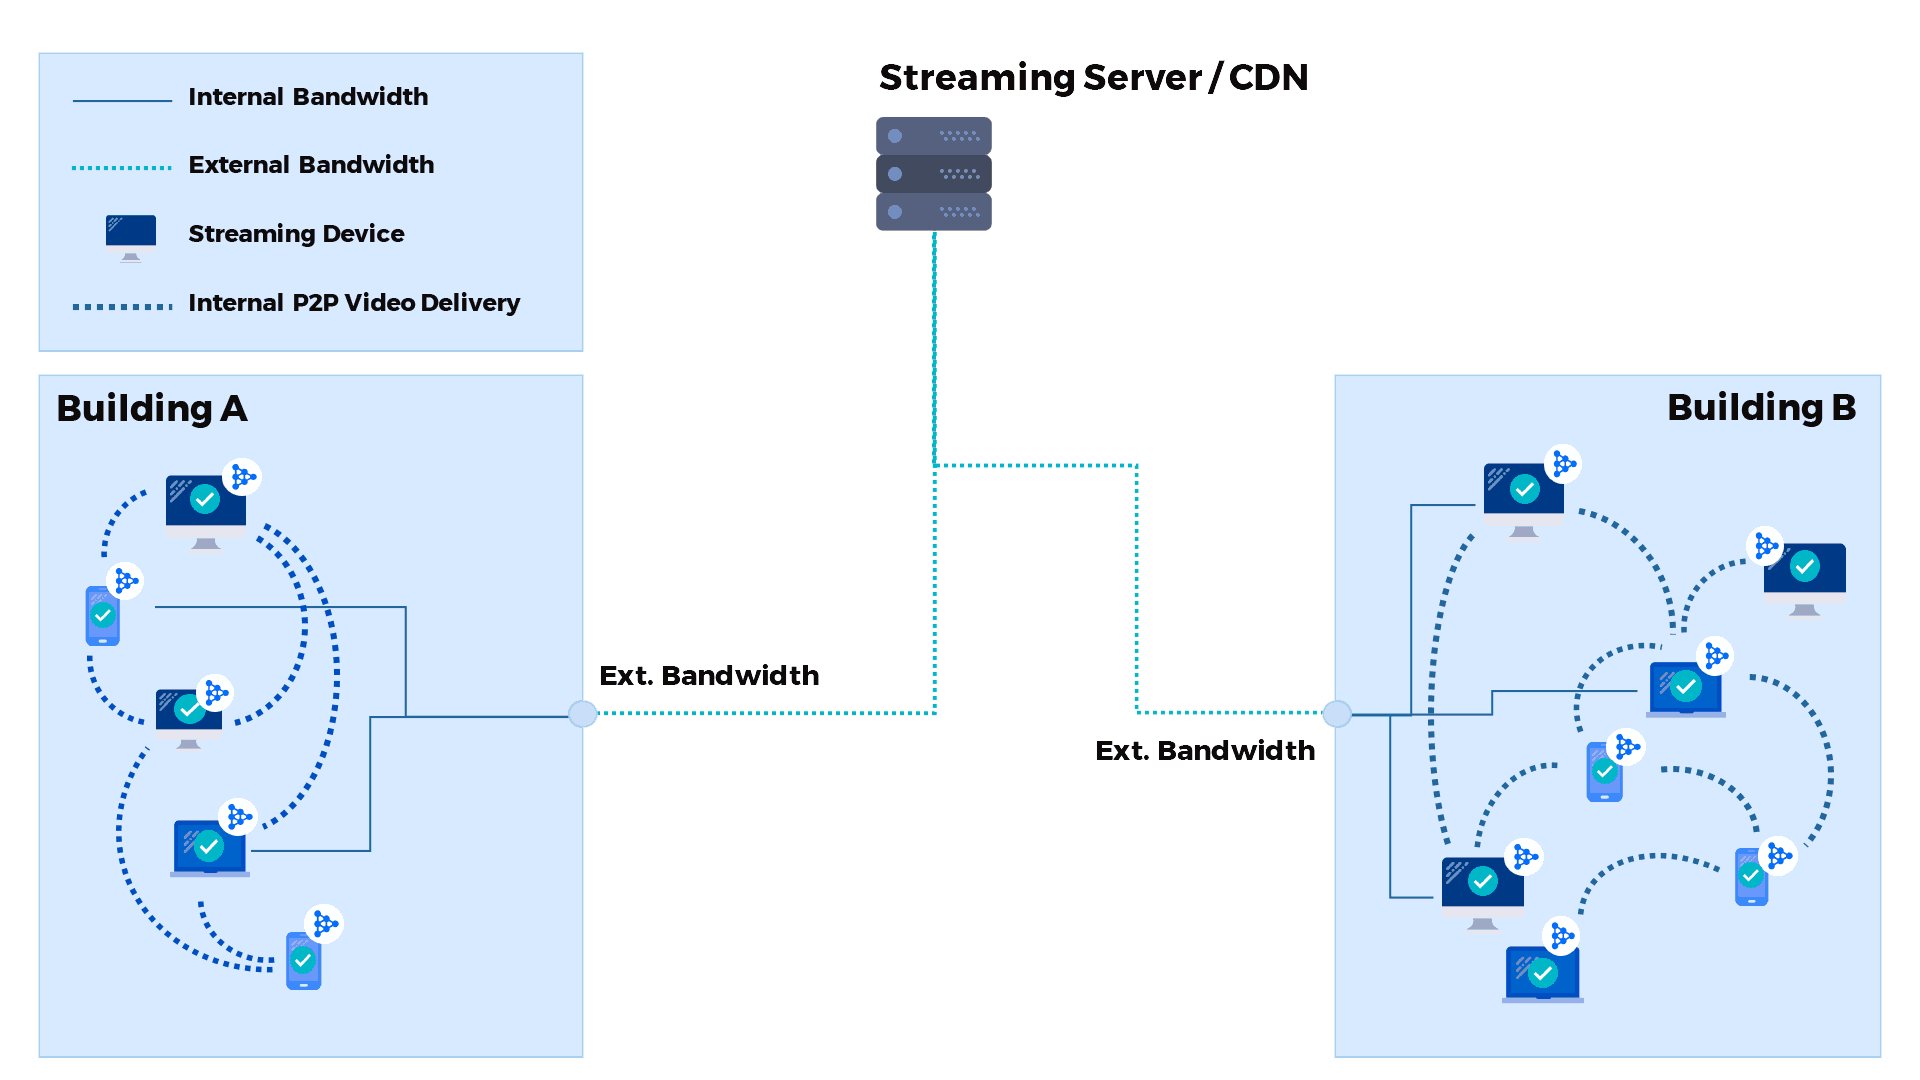 Intranet Livestreaming - Diagramm mit Peer to Peer